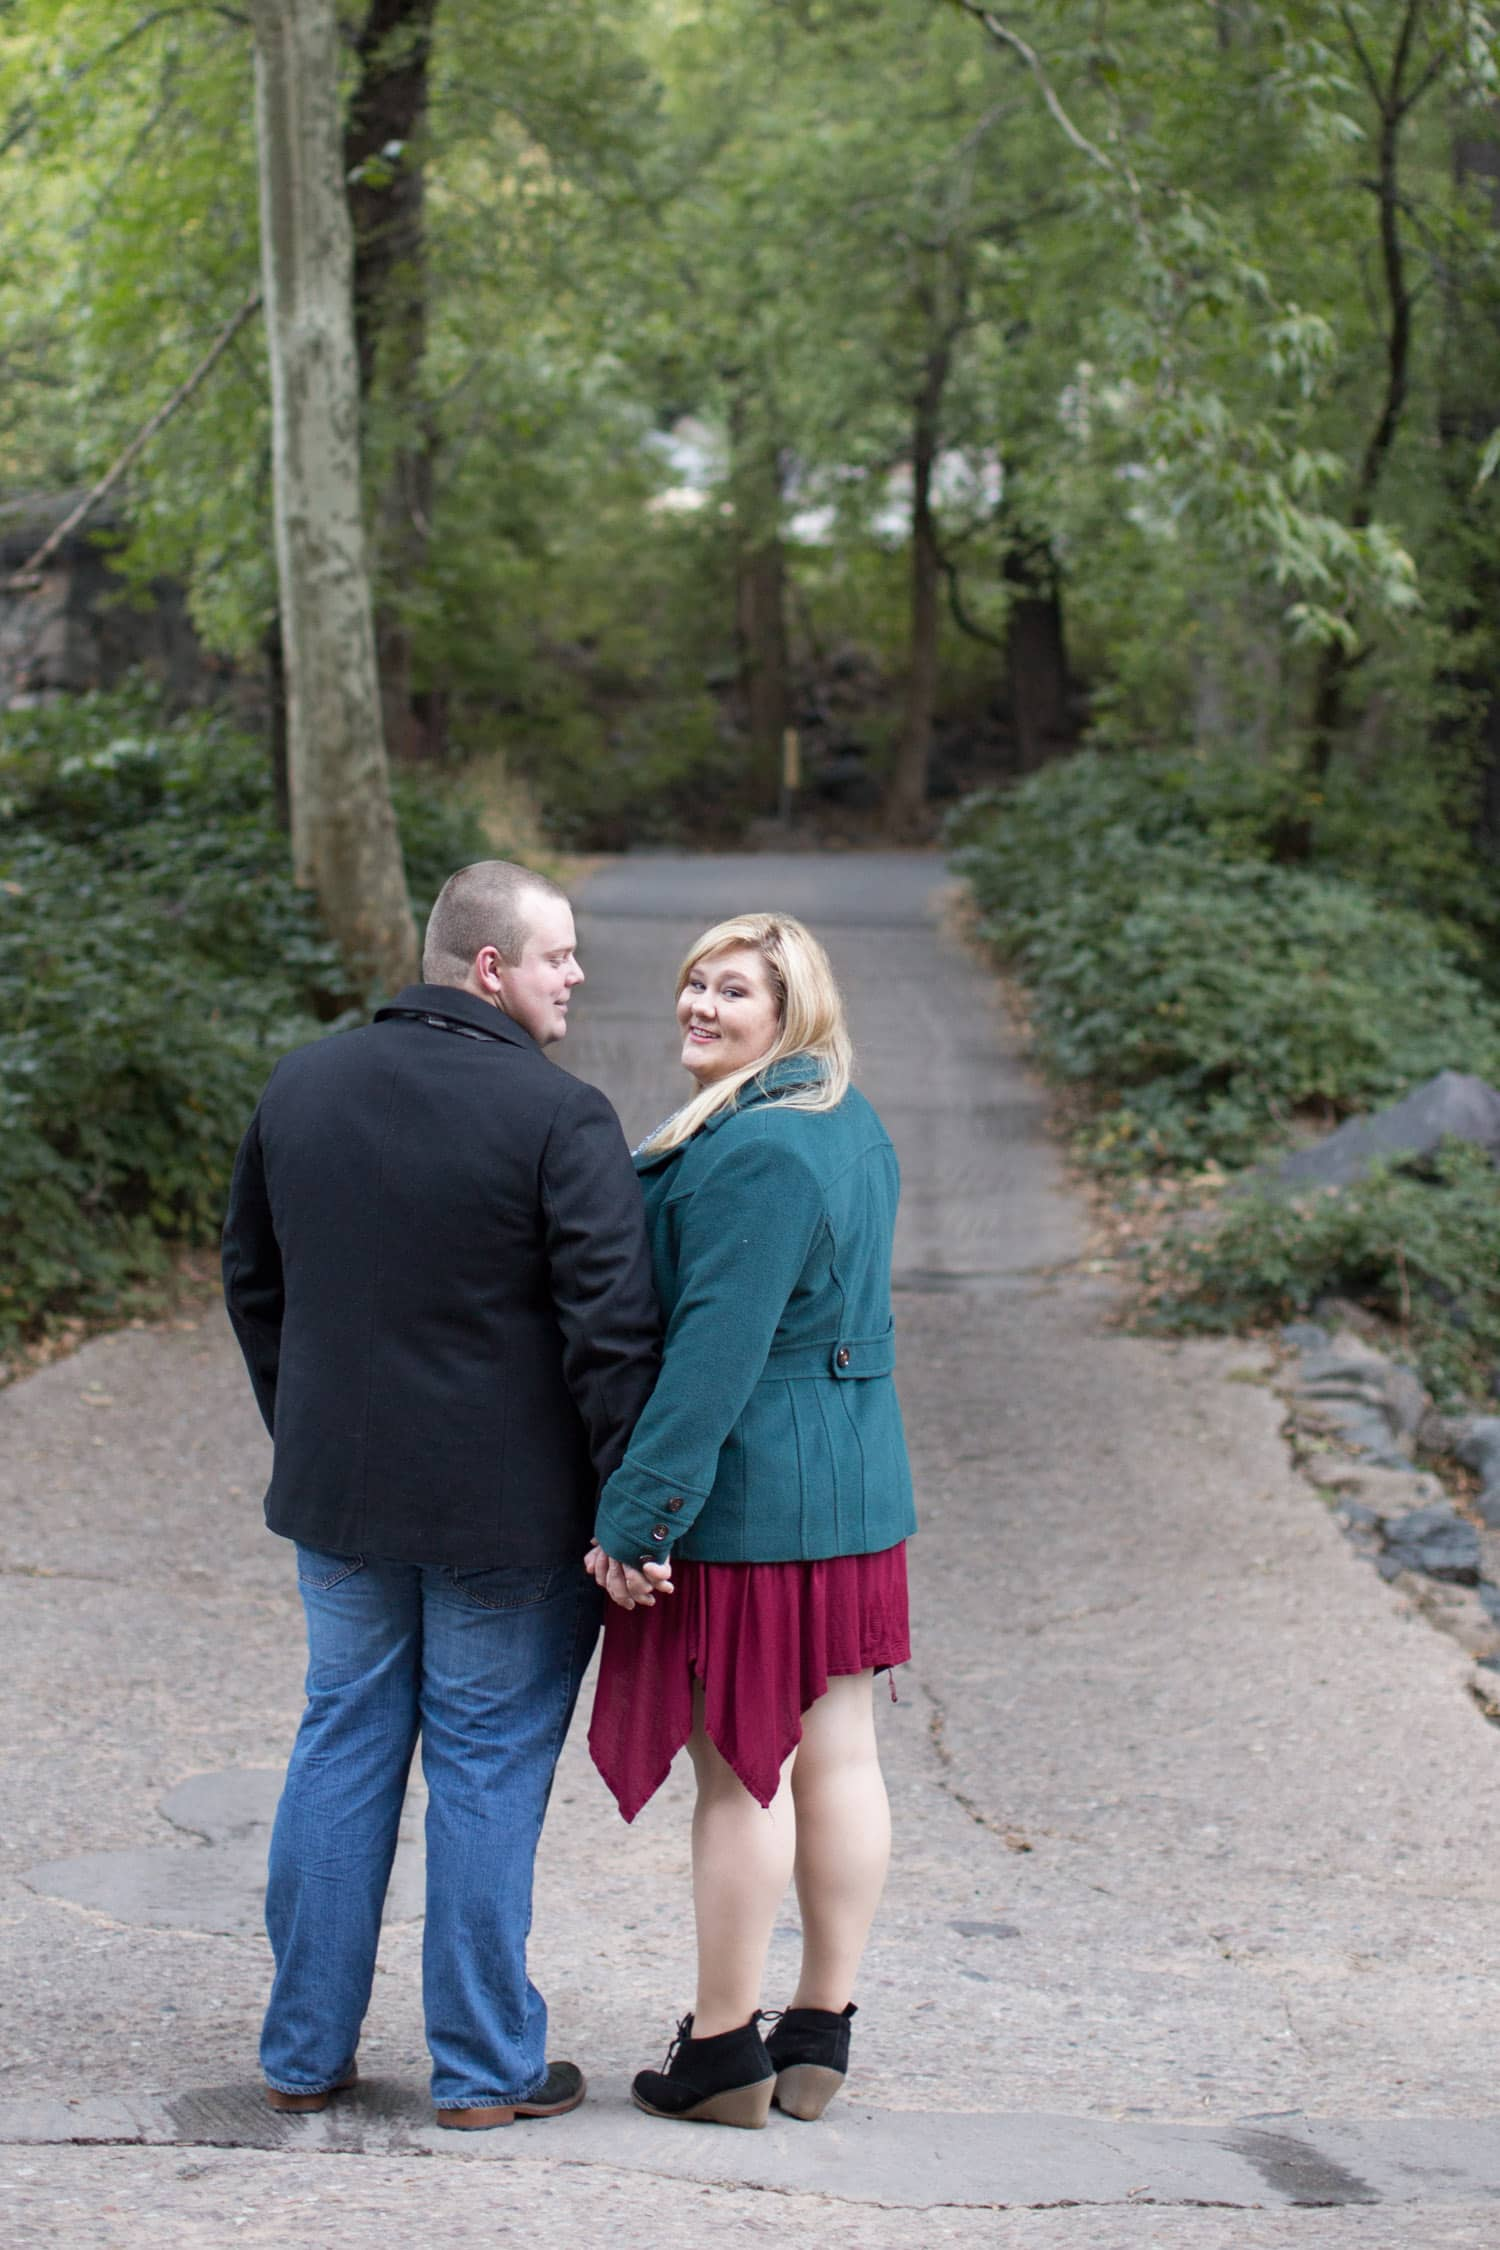 Plus size engagement photos